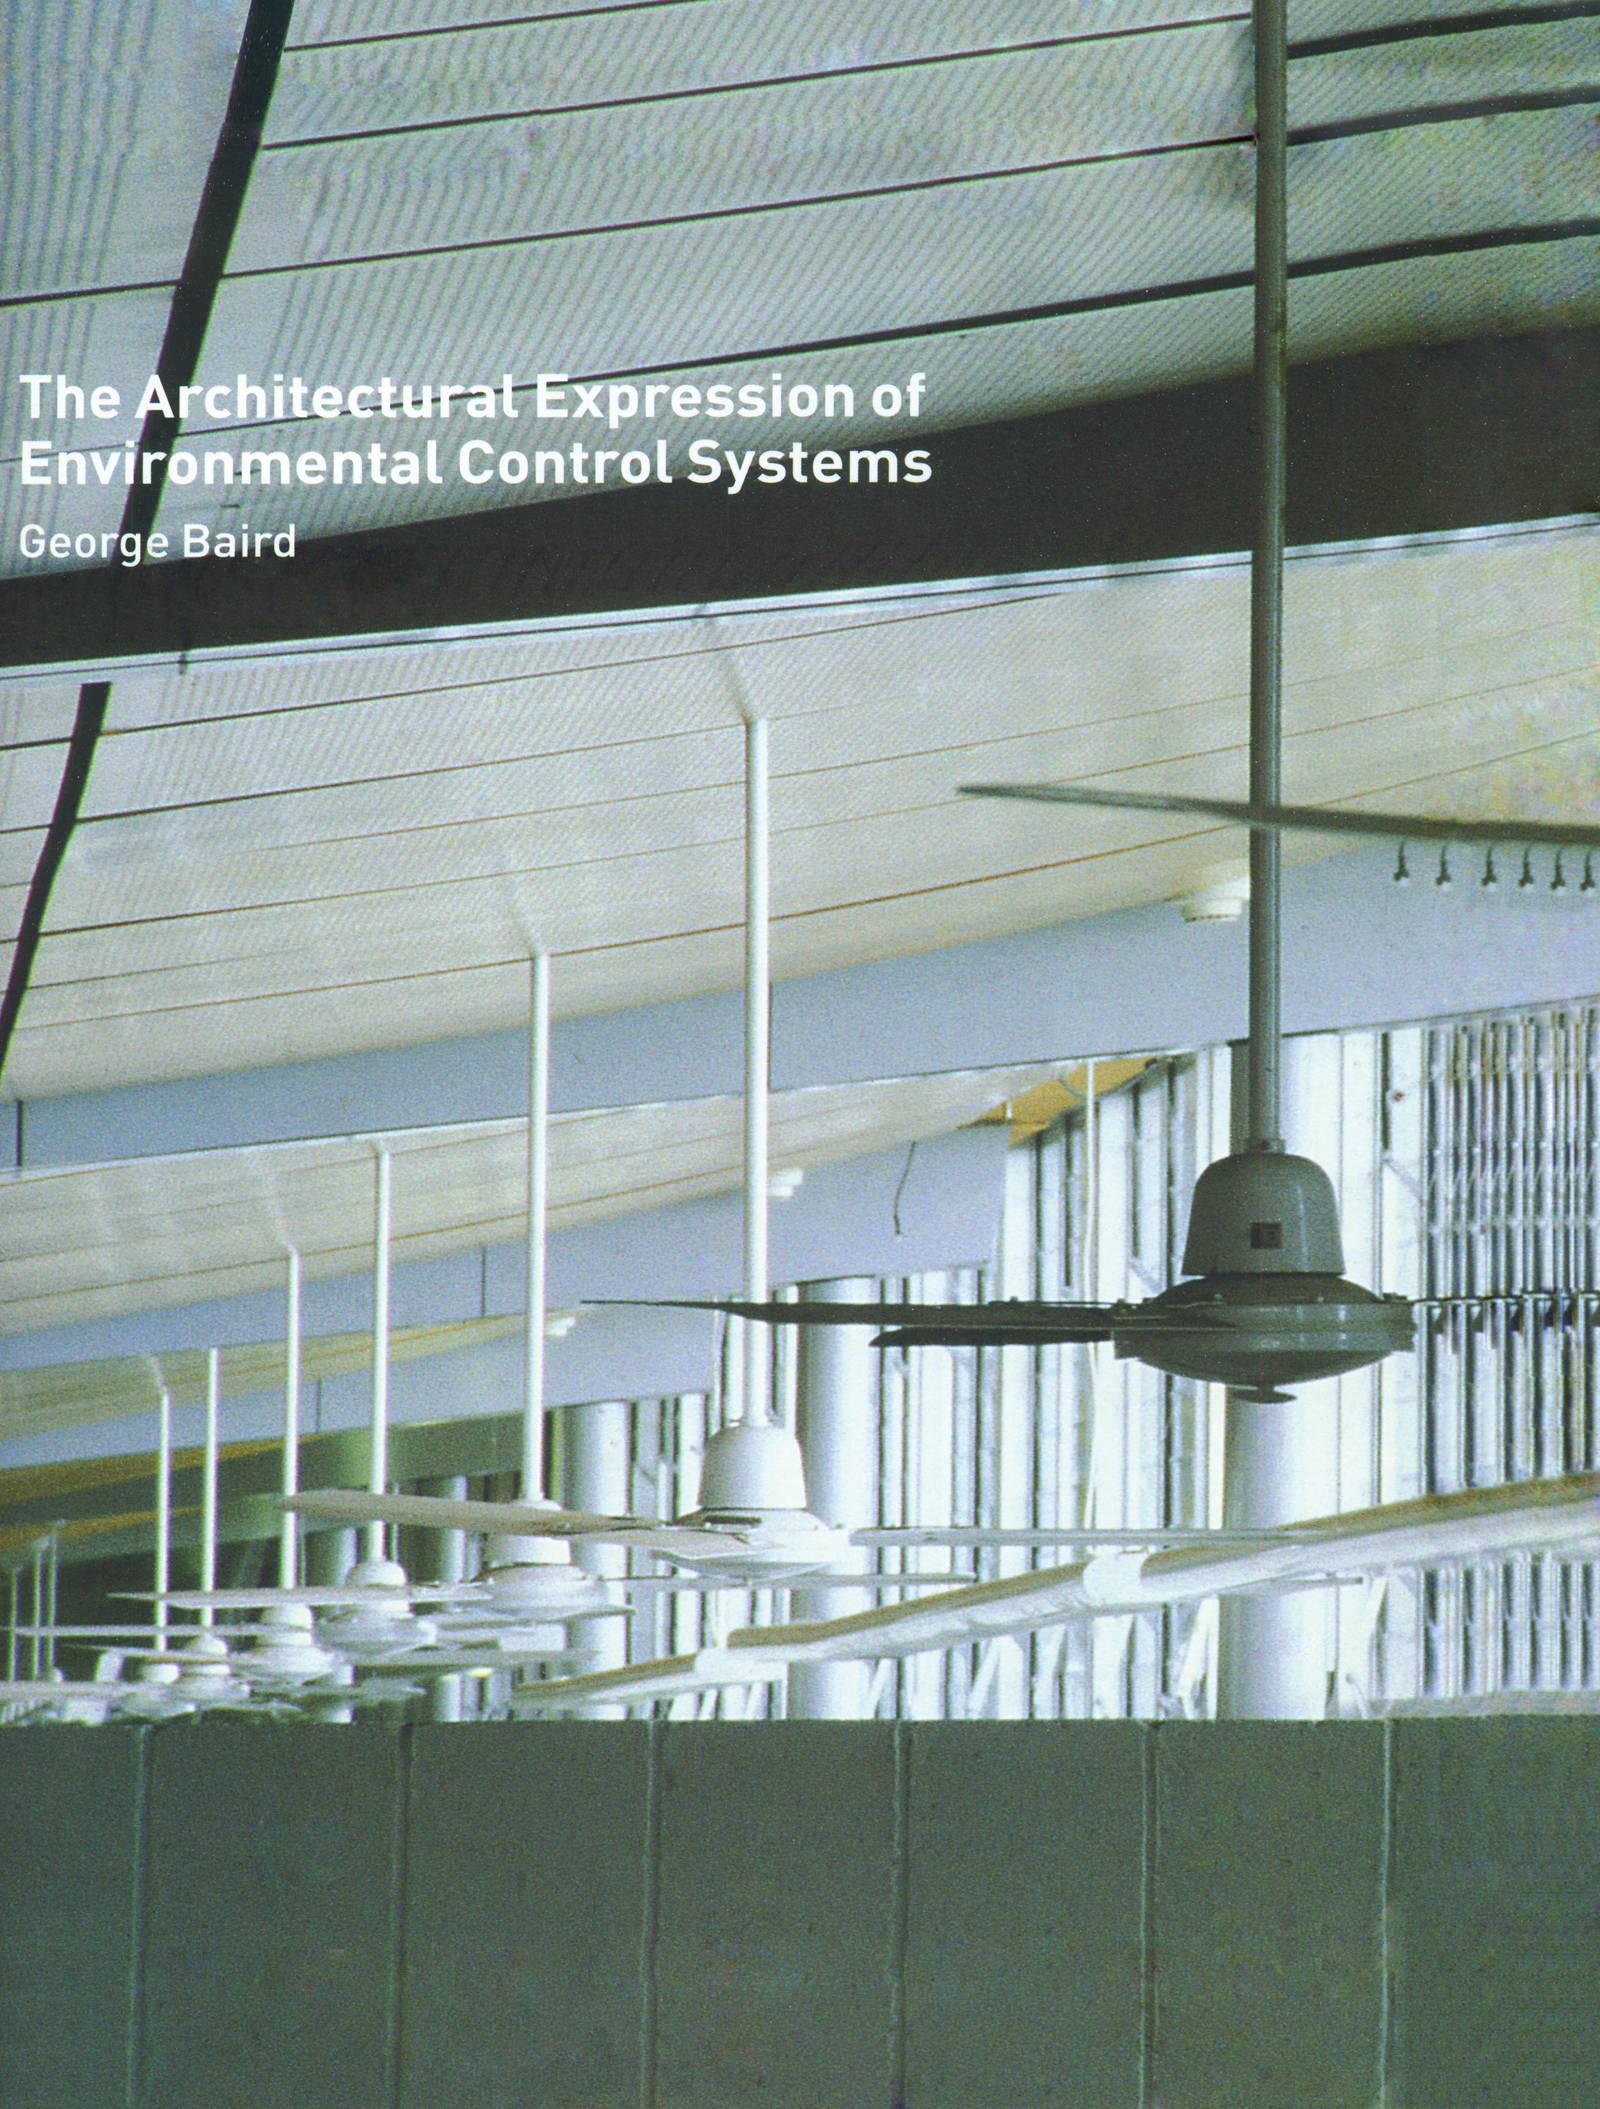 The Architectural Expression of Environmental Control Systems